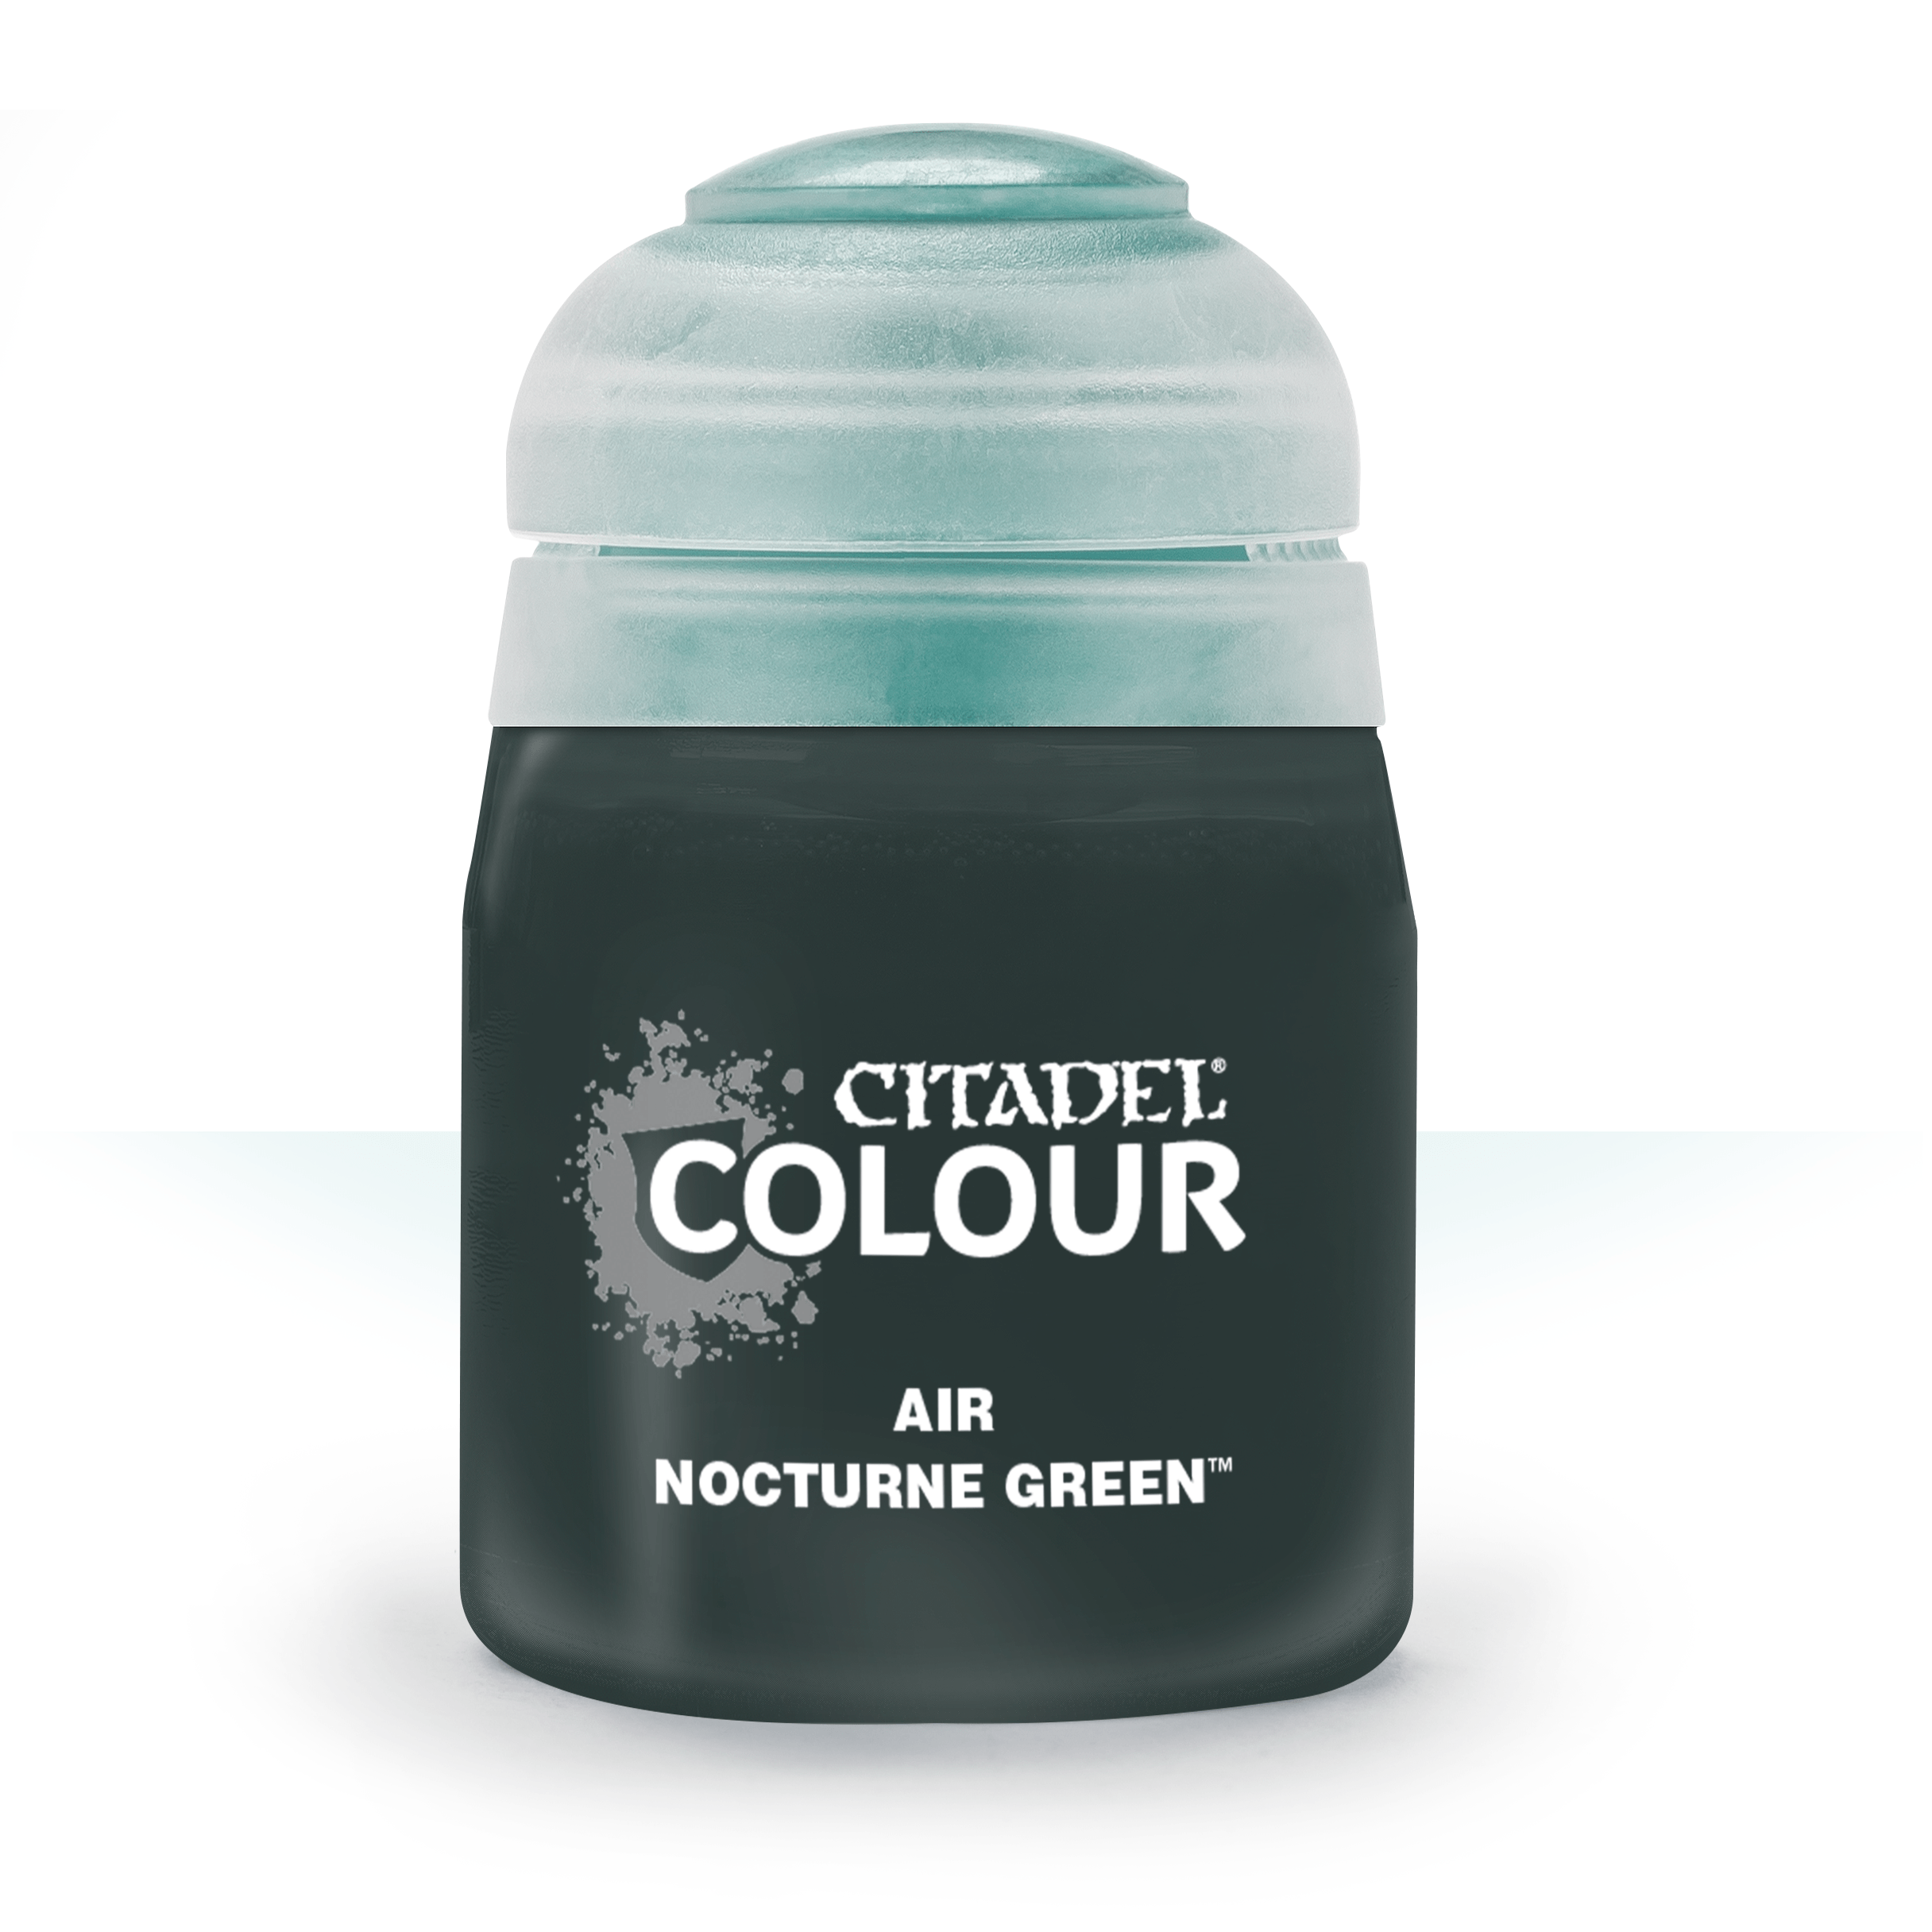 Citadel Airbrush Paints: Nocturne Green